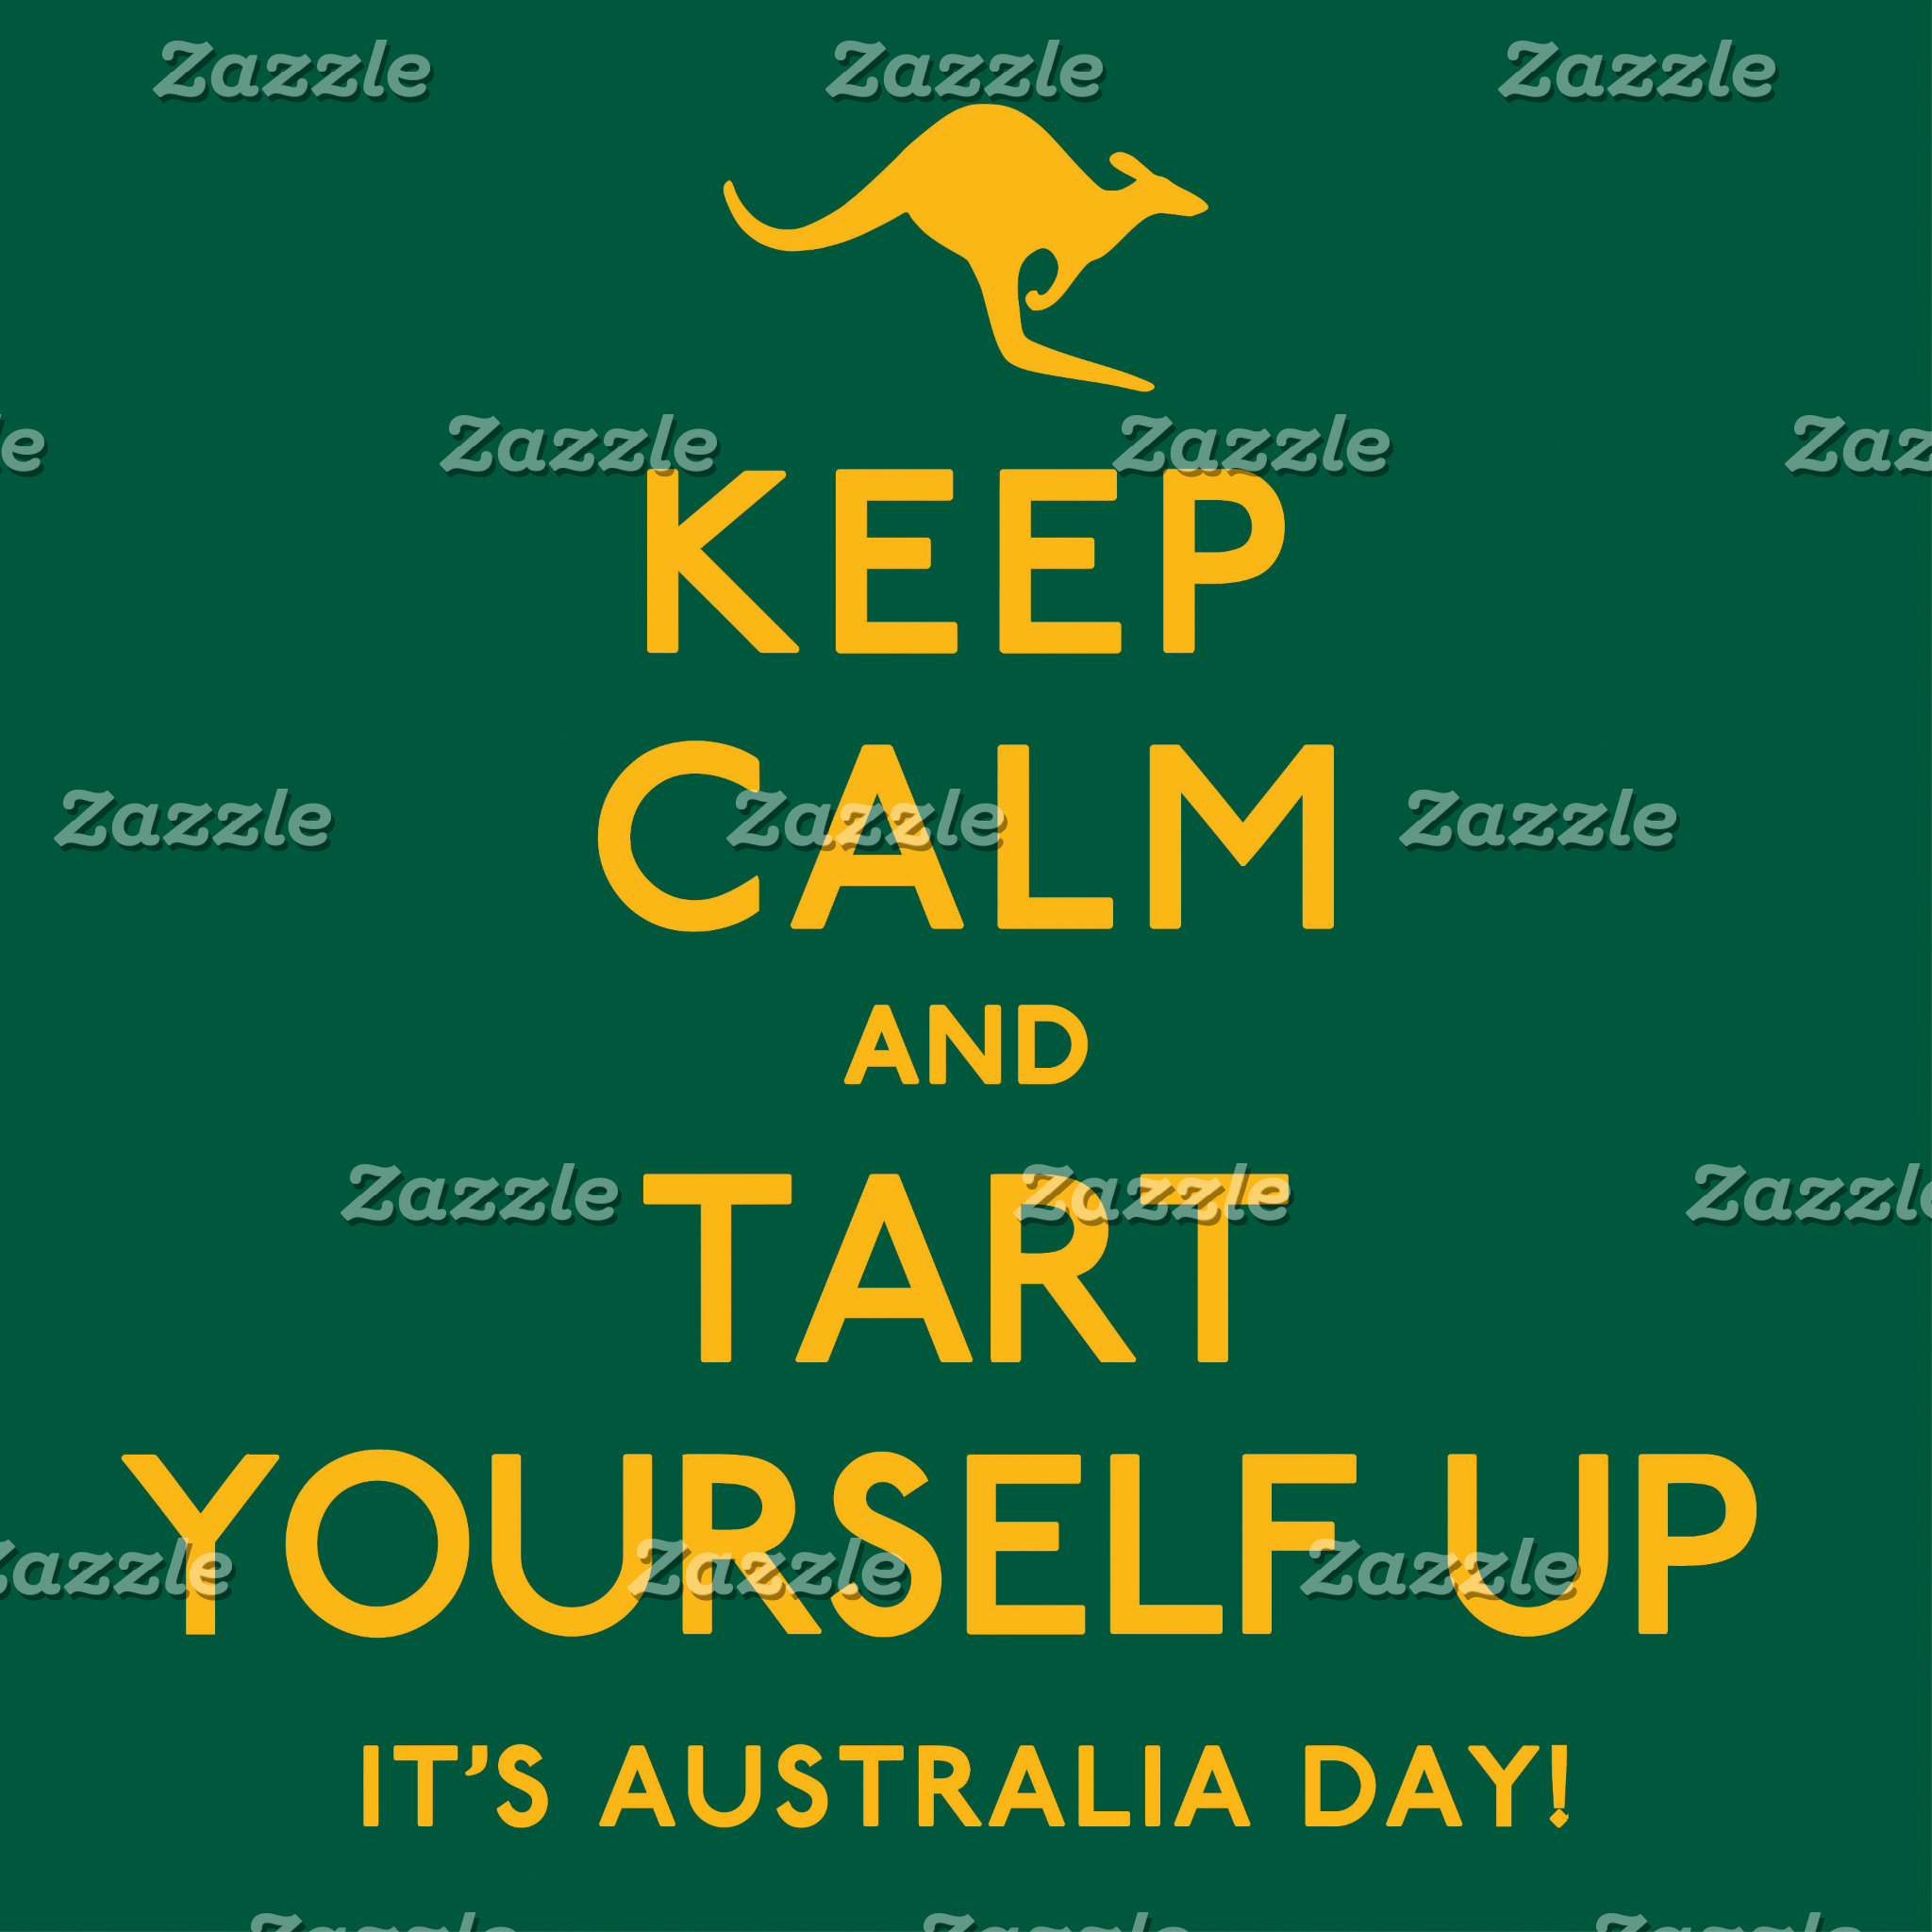 Keep Calm - The Australian Series